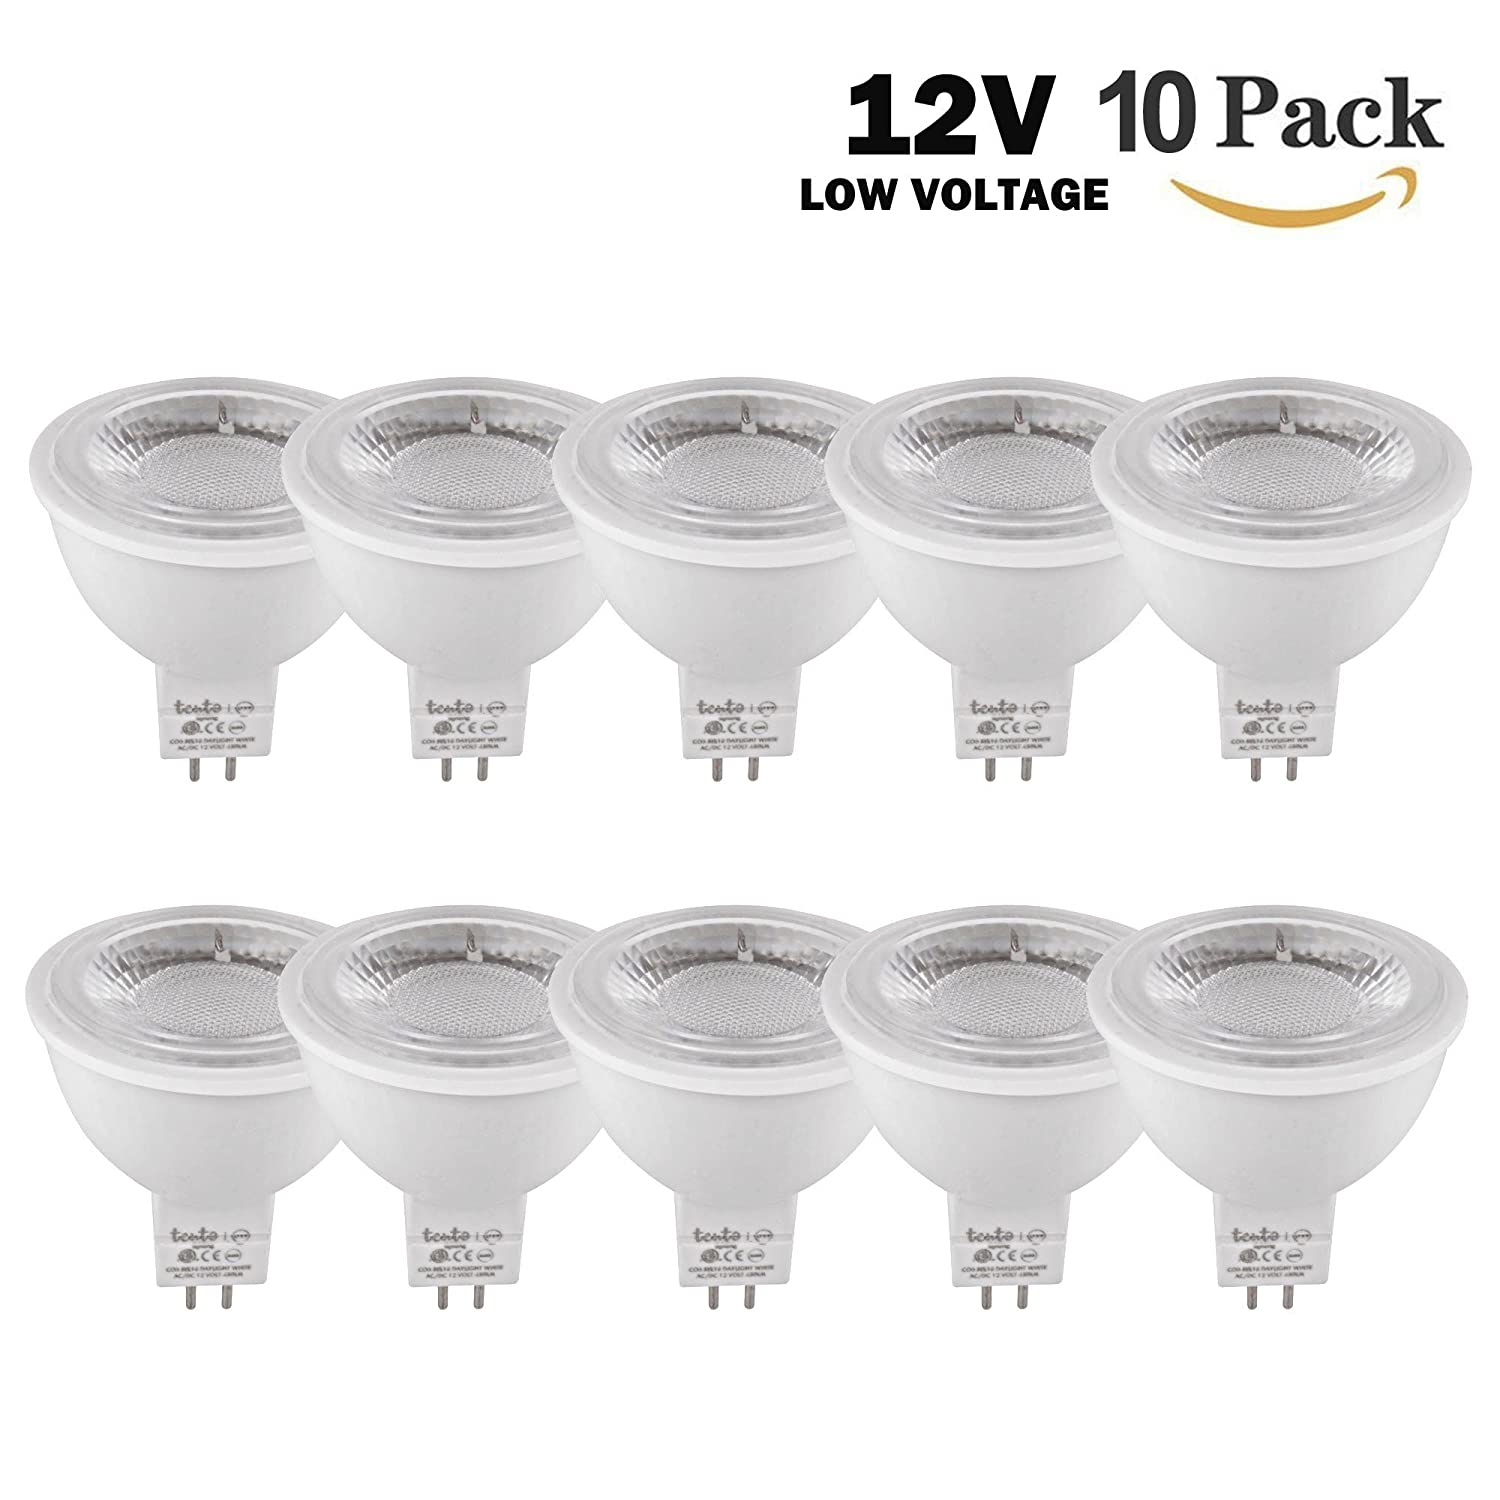 LED Mr16 Bulbs 12 Volt Pack of 10 Pieces COB 5w LED 50 Watts Equivalent Daylight White 6000k